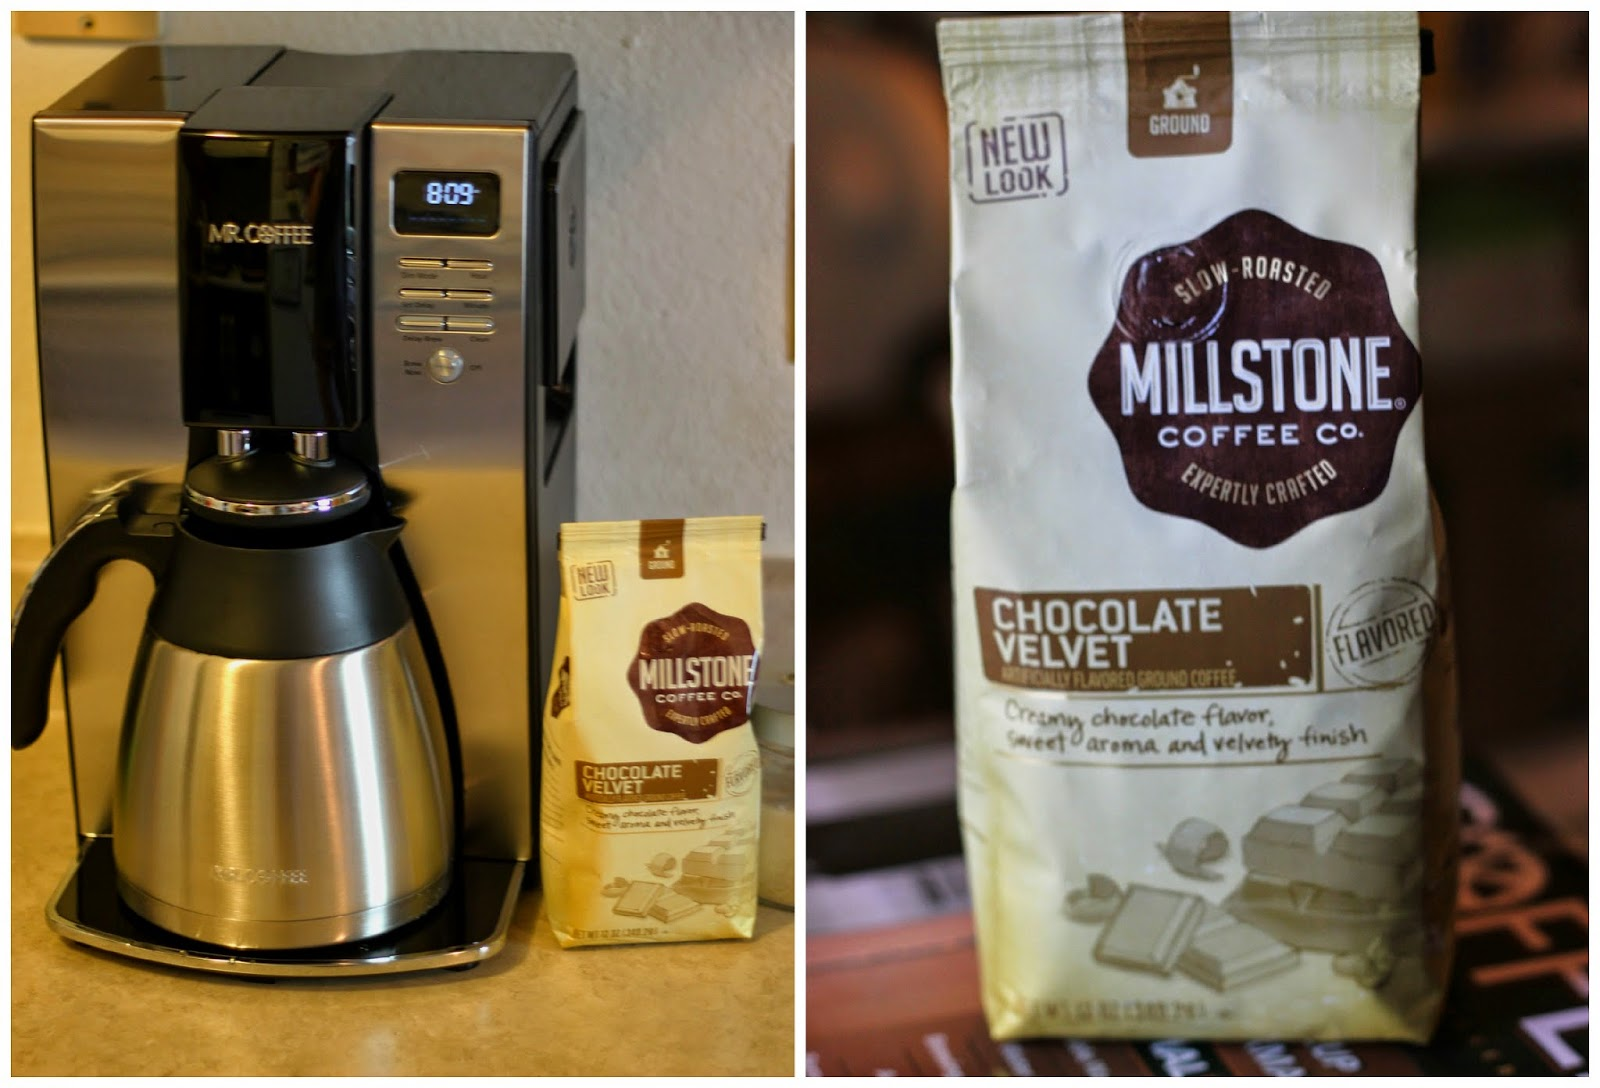 Mr Coffee Coffee Maker Keeps Beeping : Jaime Loves Stuff : ***CLOSED*** Oh Morning Coffee, Where Would I Be Without Thee? + GIVEAWAY!